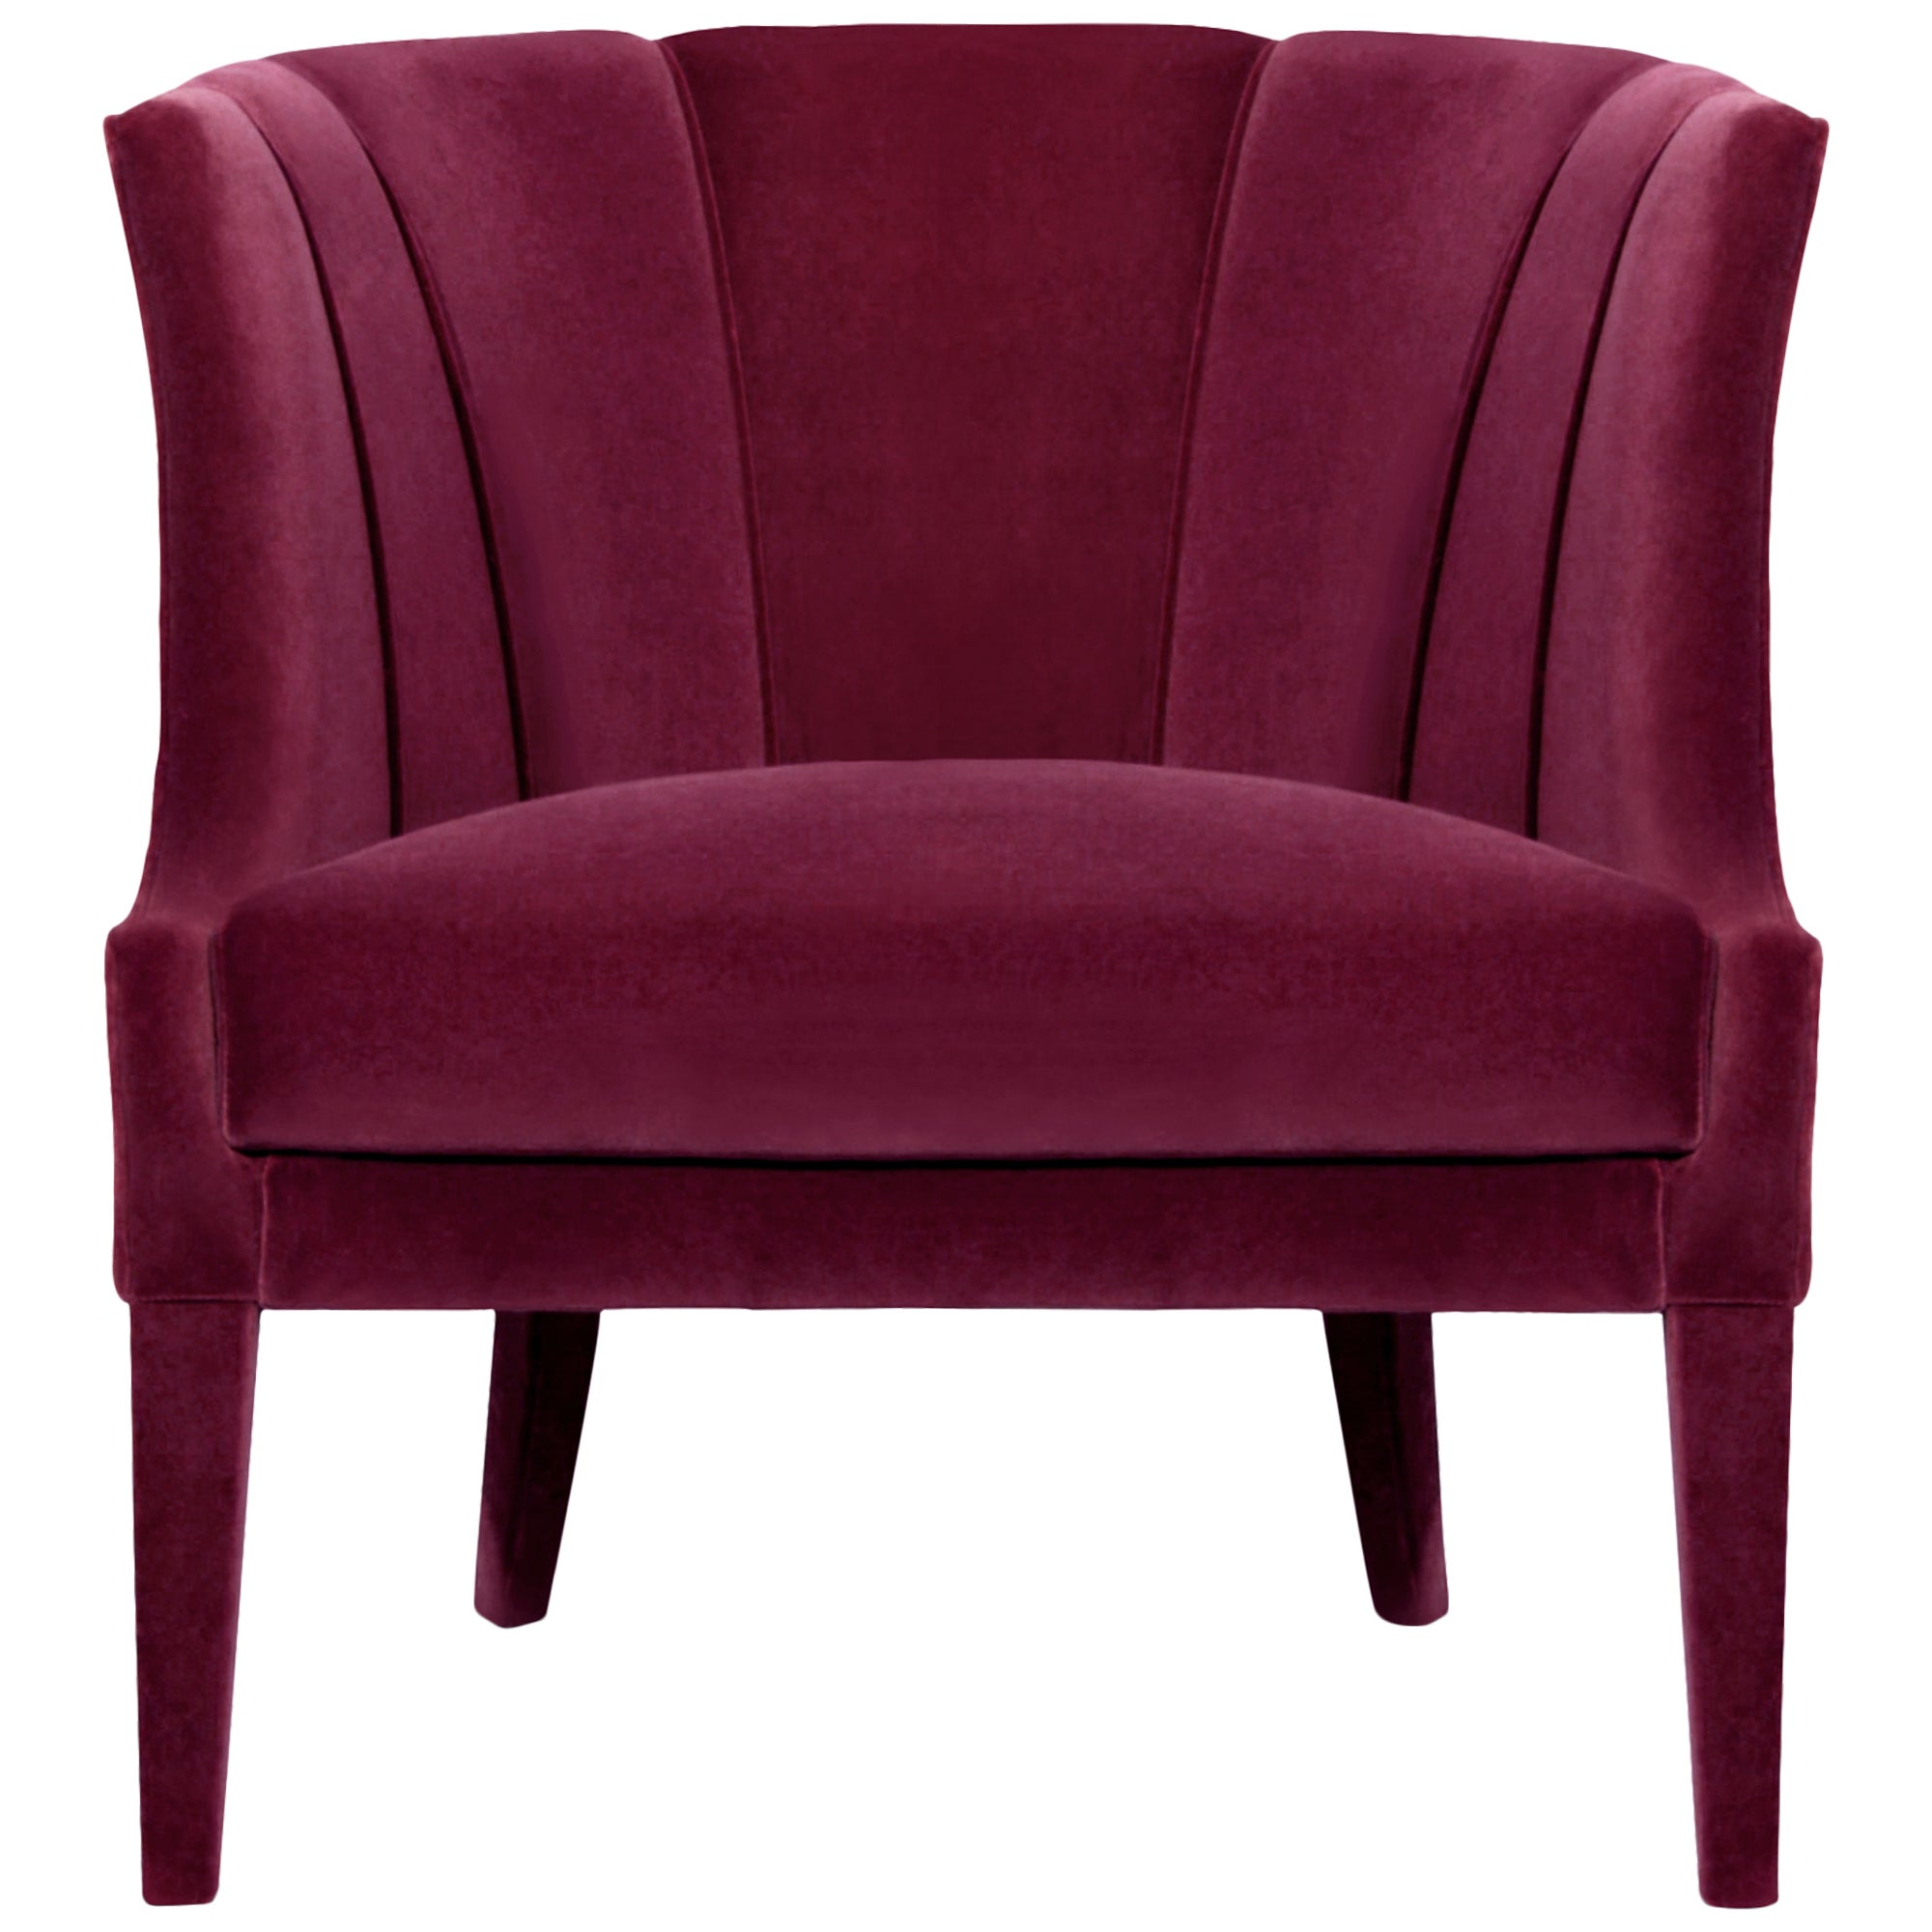 Awesome Camilla Armchair In Cotton Velvet And Fully Upholstered Bralicious Painted Fabric Chair Ideas Braliciousco